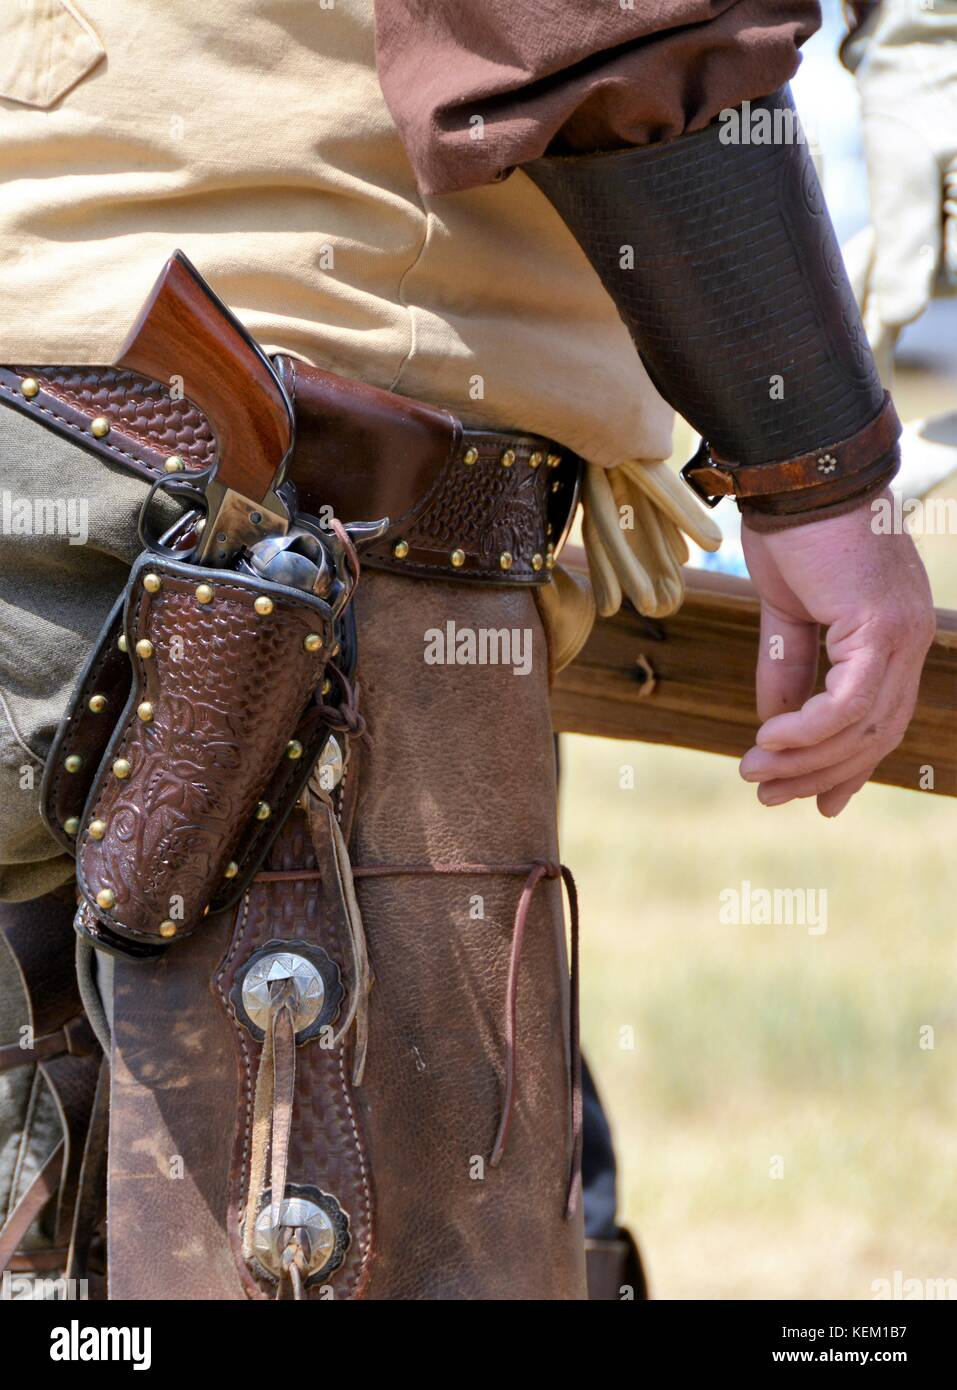 0d45548d170e6 Six Shooter Stock Photos   Six Shooter Stock Images - Alamy